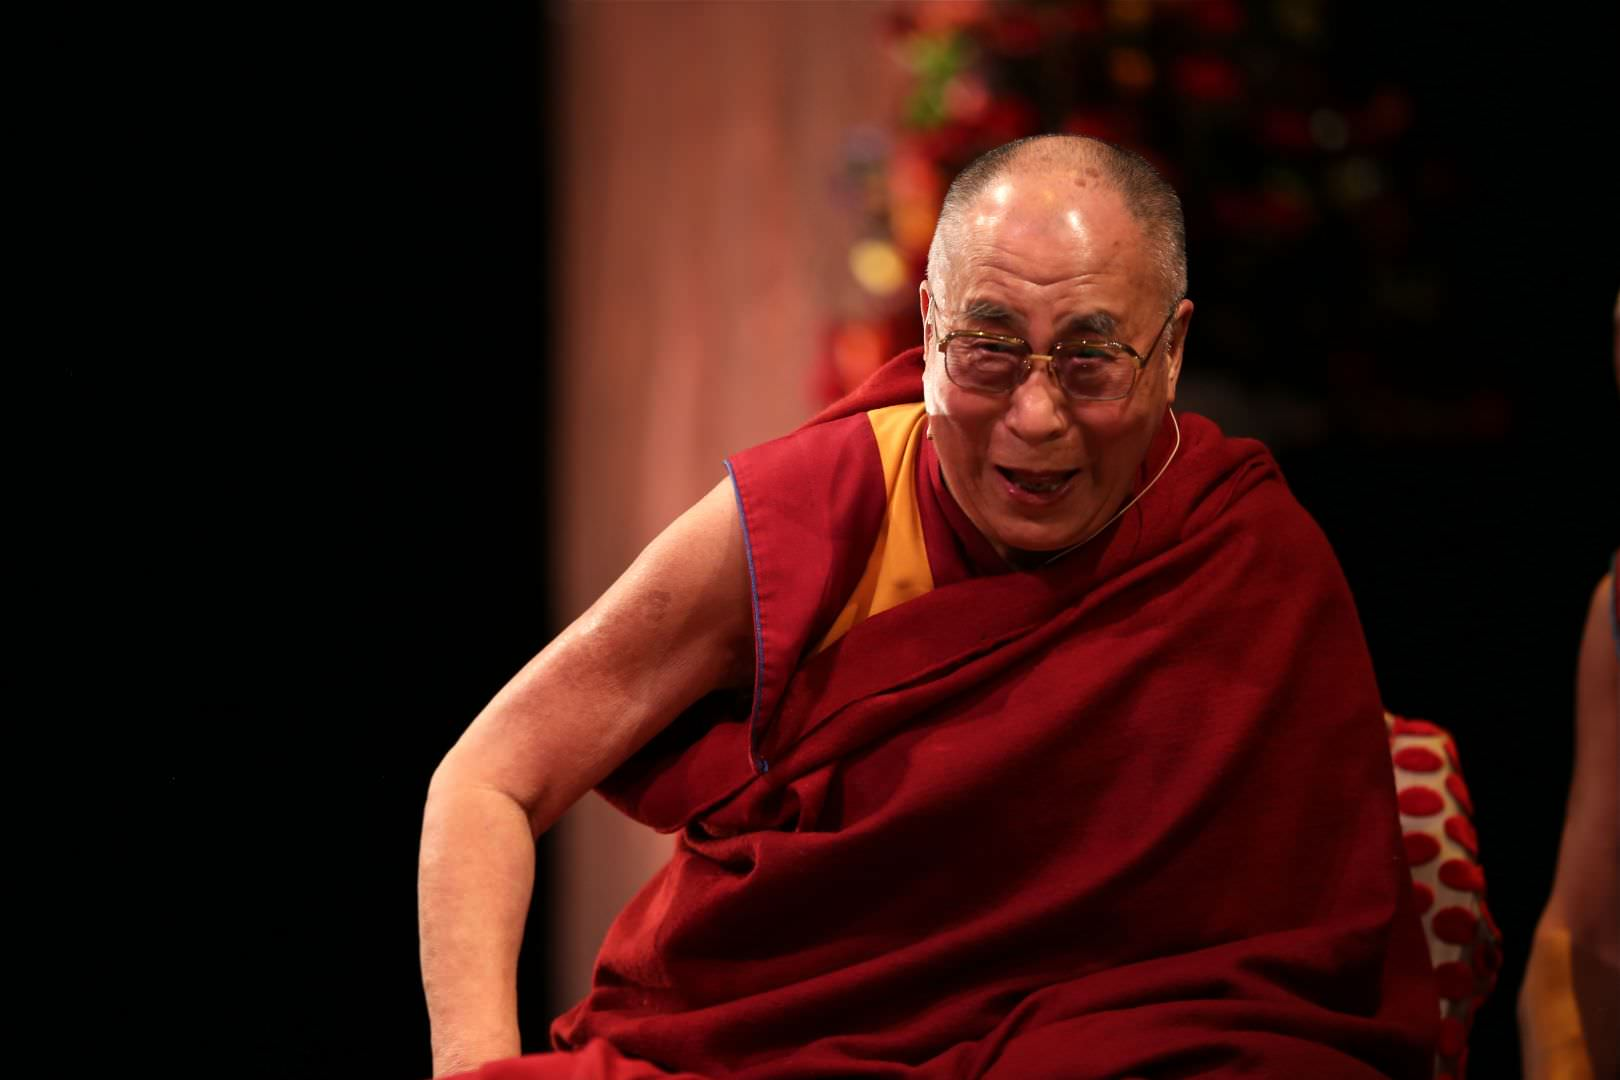 The Dalai Lama, a patron of the Action for Happiness, says that he joined because he wants to promote 'secular ethics' that are not based on any religion or tribal affiliation. Image: Action for Happiness